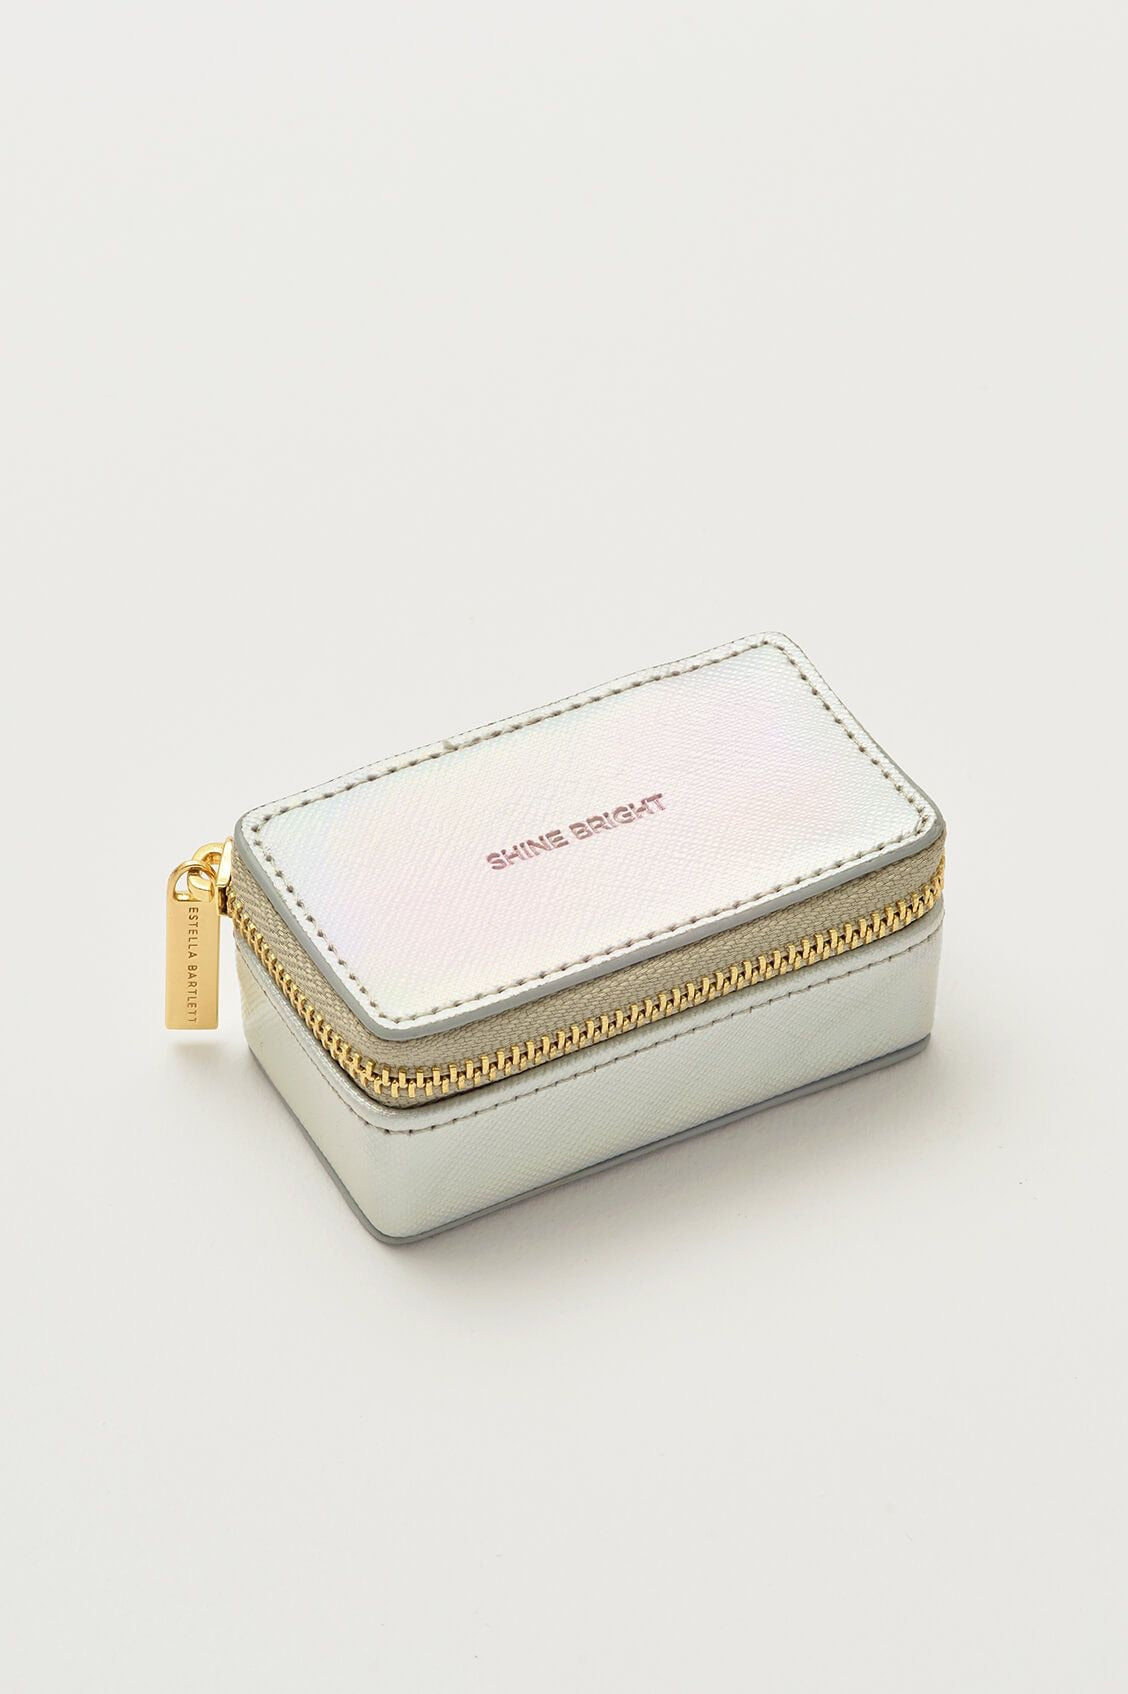 Tiny Jewellery Box - Iridescent 'Shine Bright'